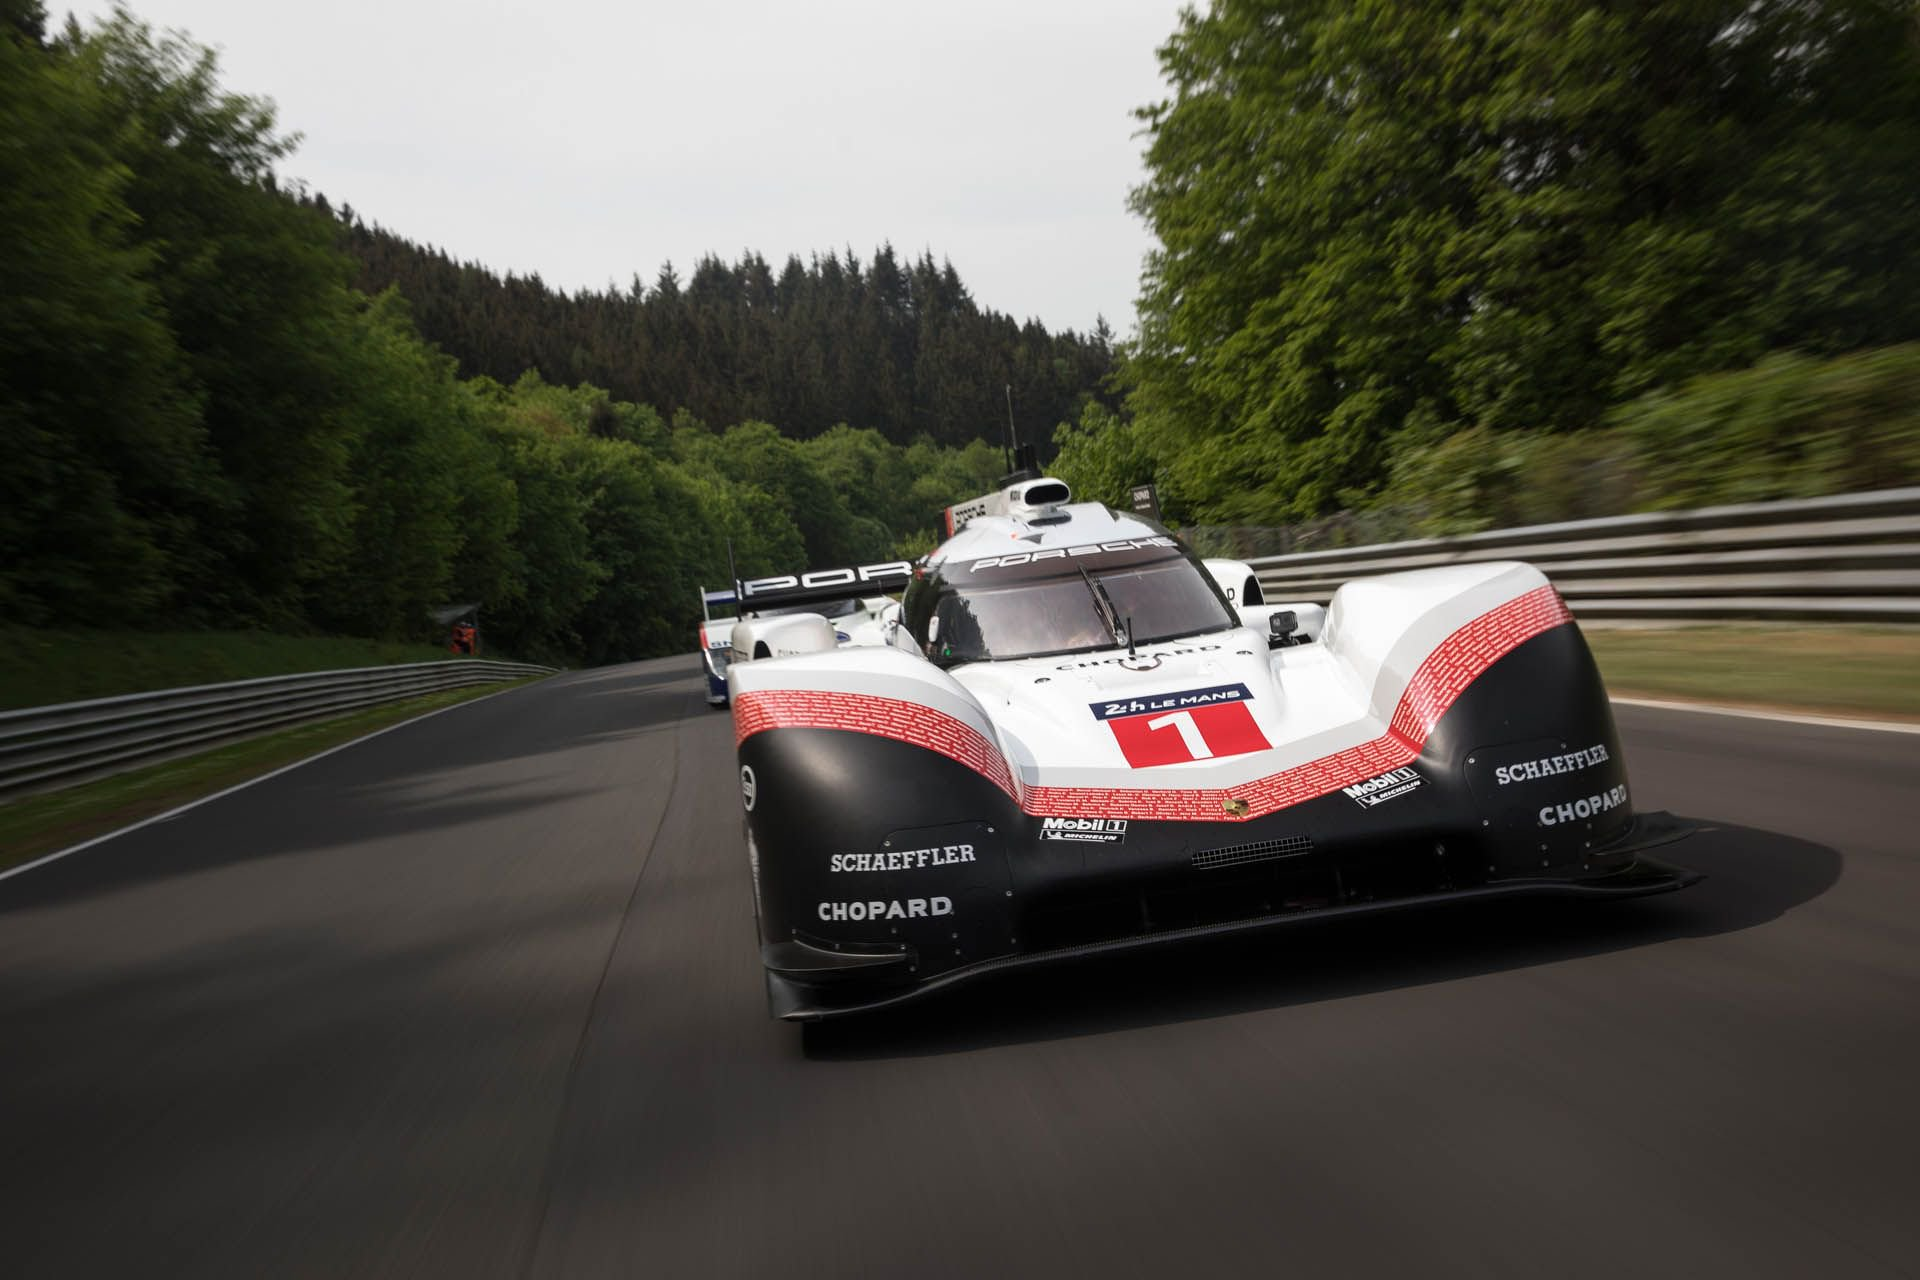 Porsche 919 Hybrid Evo and 956 at Nurburgring (1)